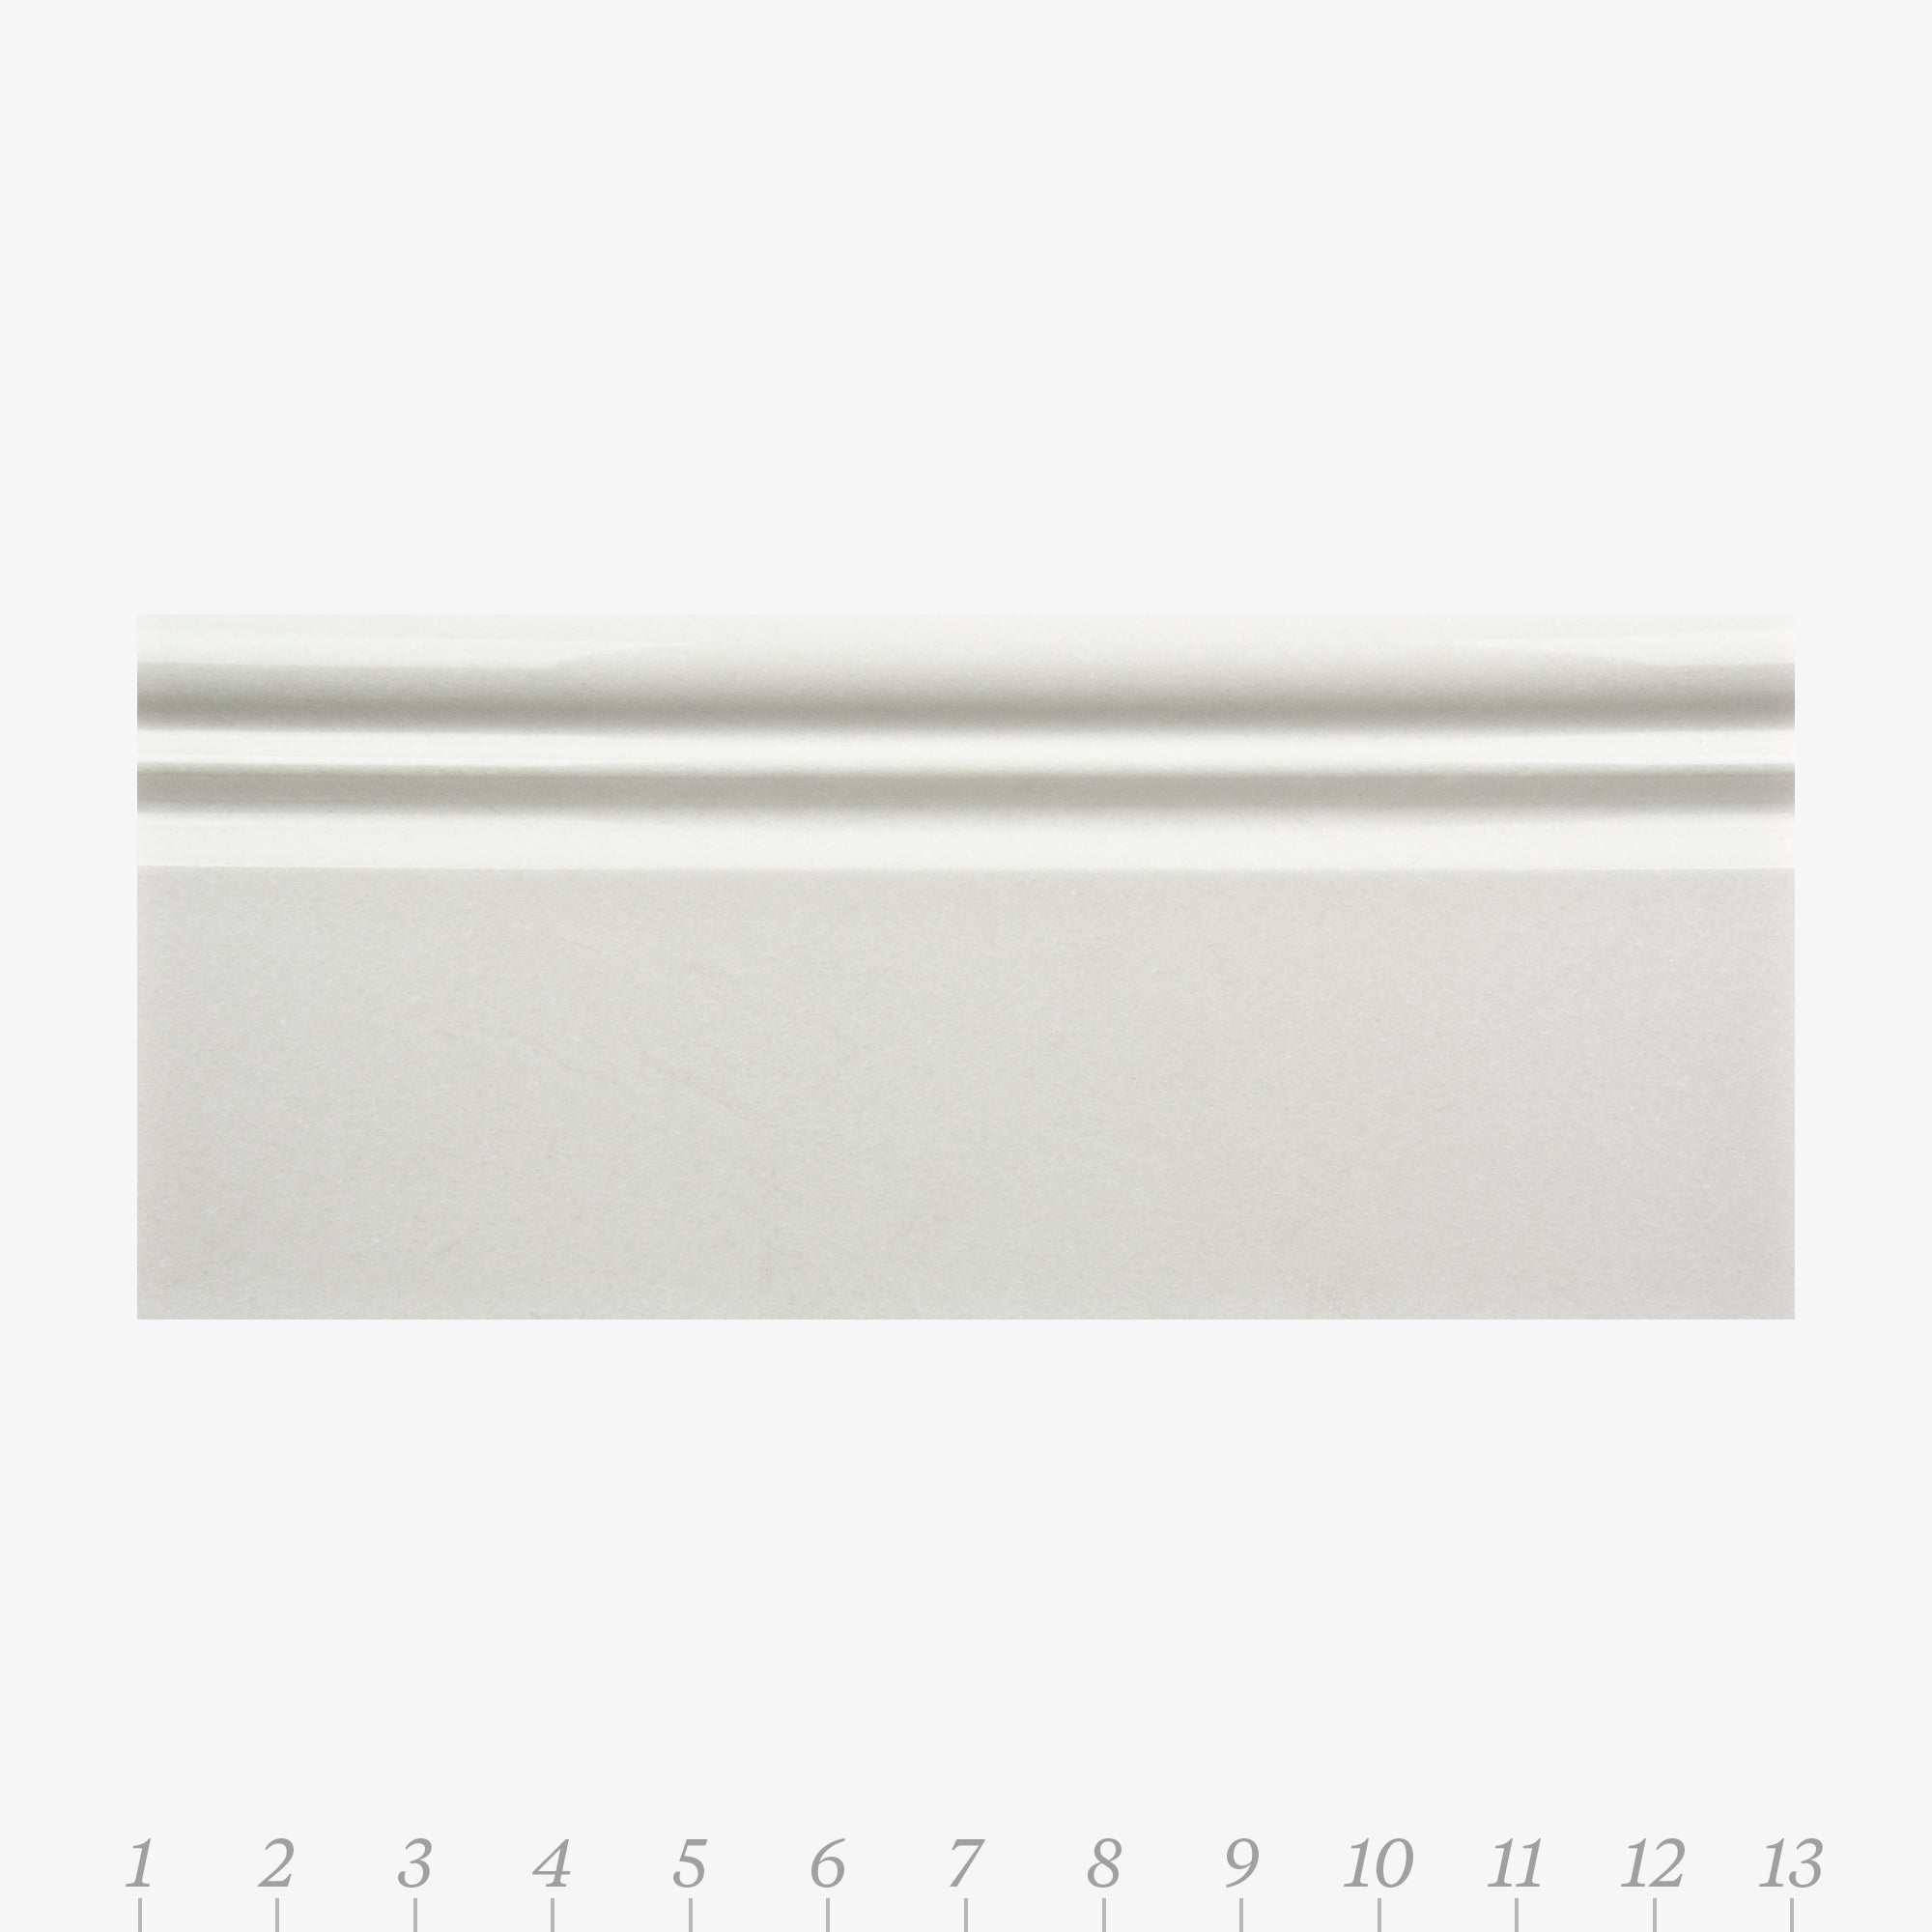 Opus 5 Thassos Marble Swatch Card  Polished Samples Base product photo